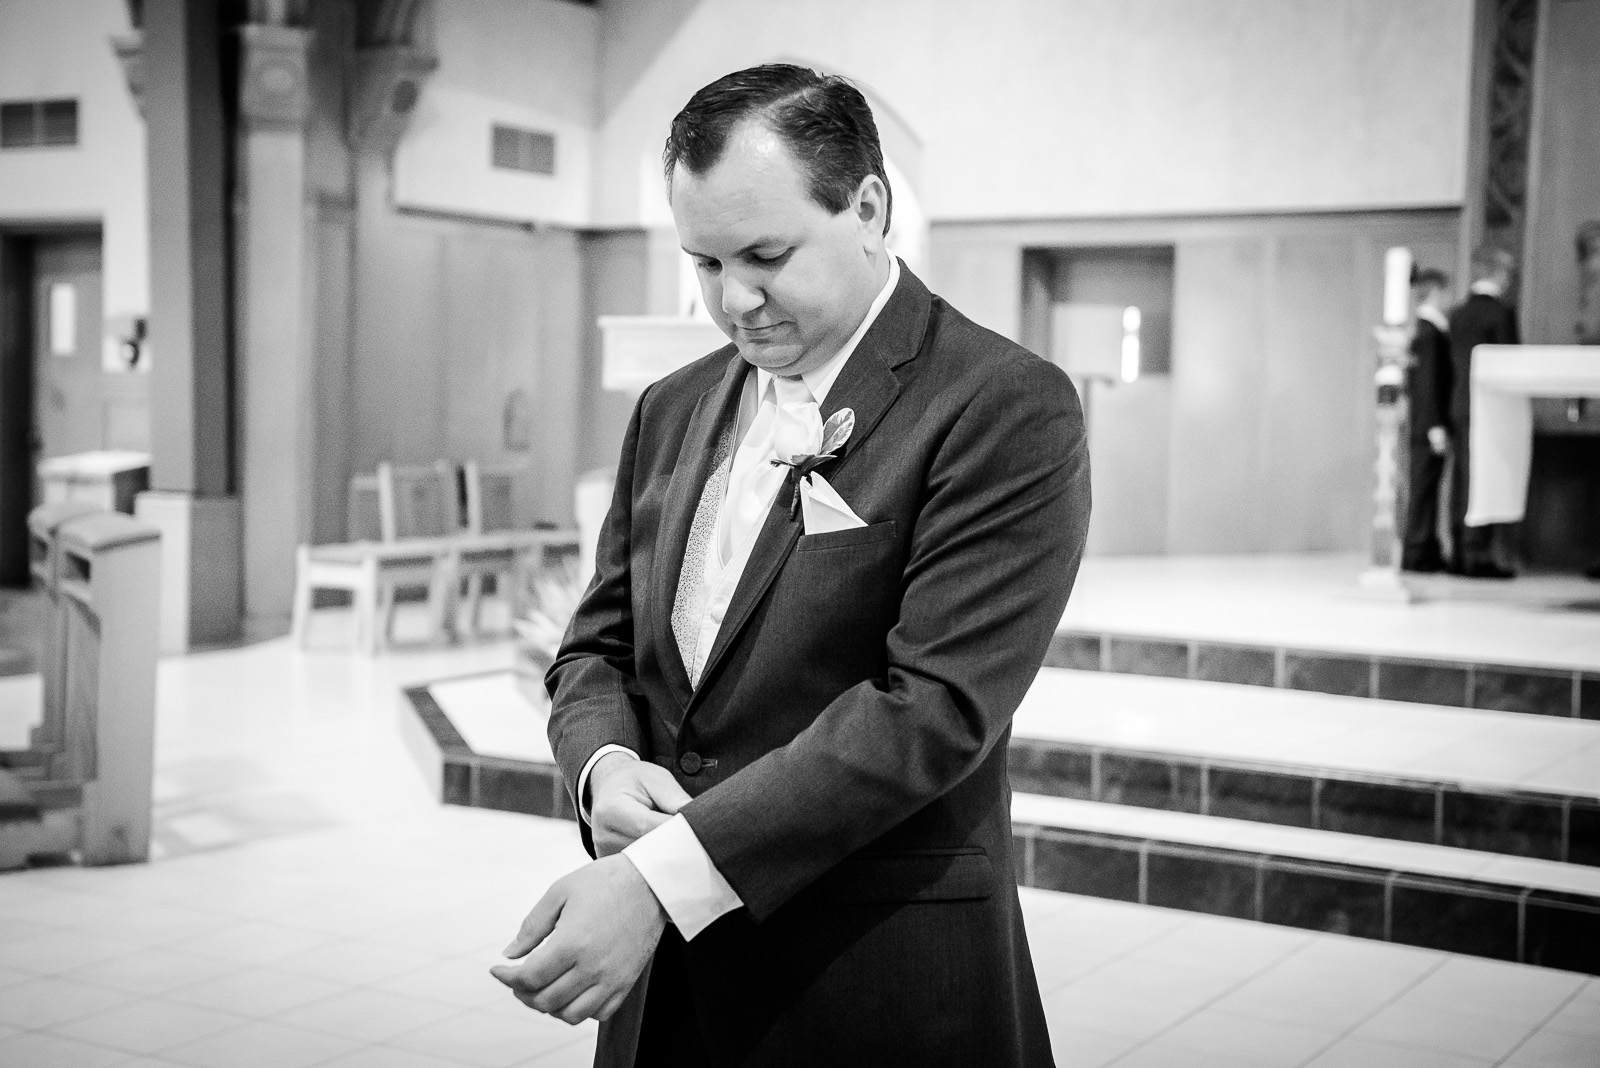 Eric_and_Christy_Photography_Blog_Julie_Adam_Wedding-3